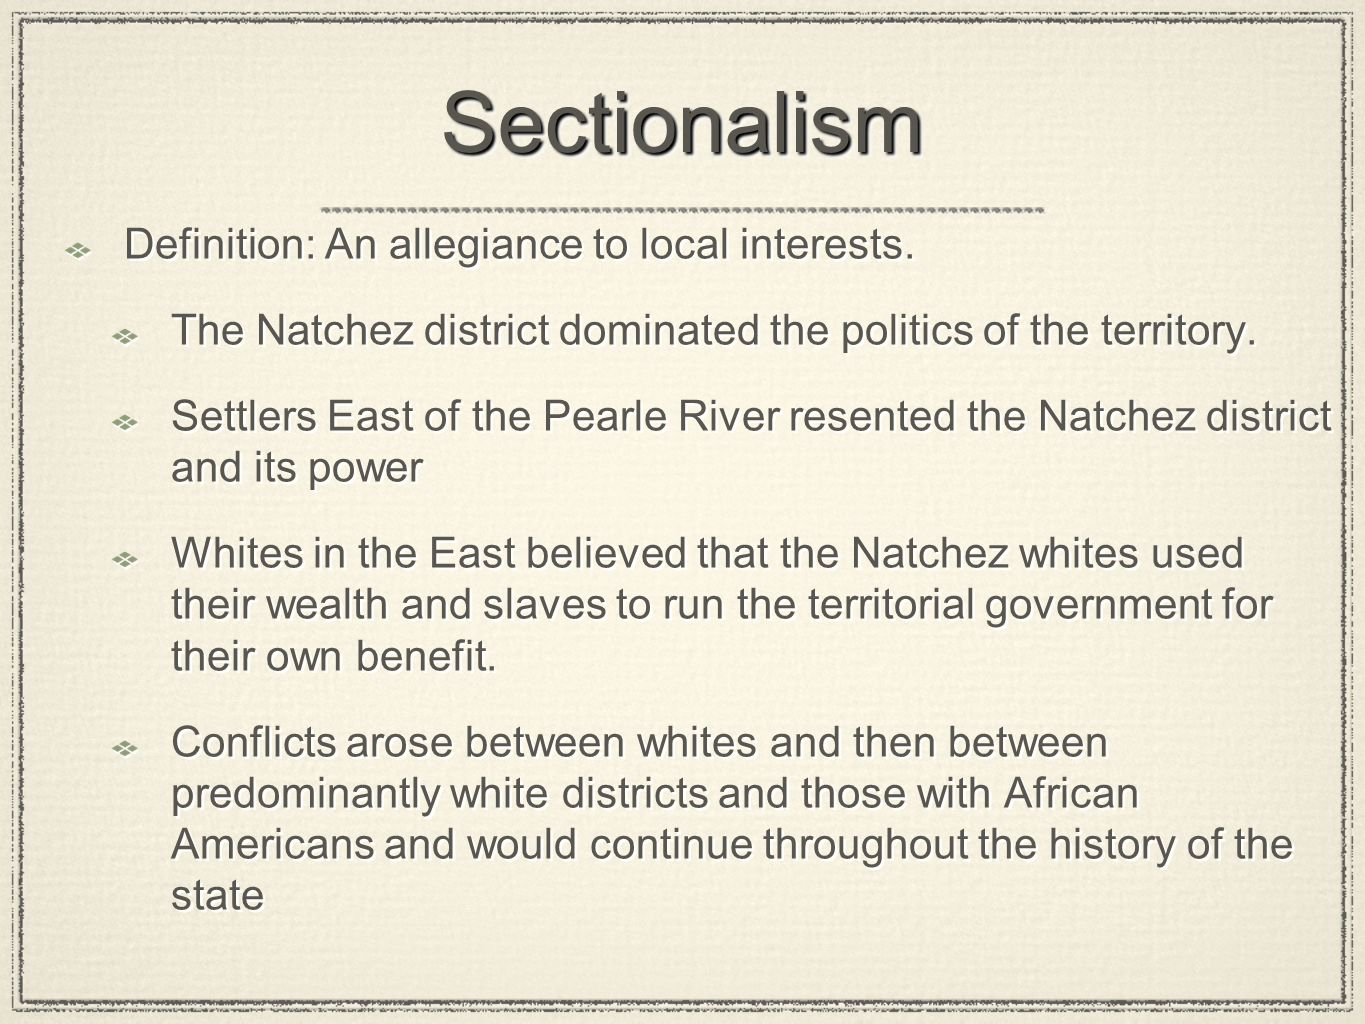 SectionalismSectionalism Definition: An allegiance to local interests. The Natchez district dominated the politics of the territory. Settlers East of